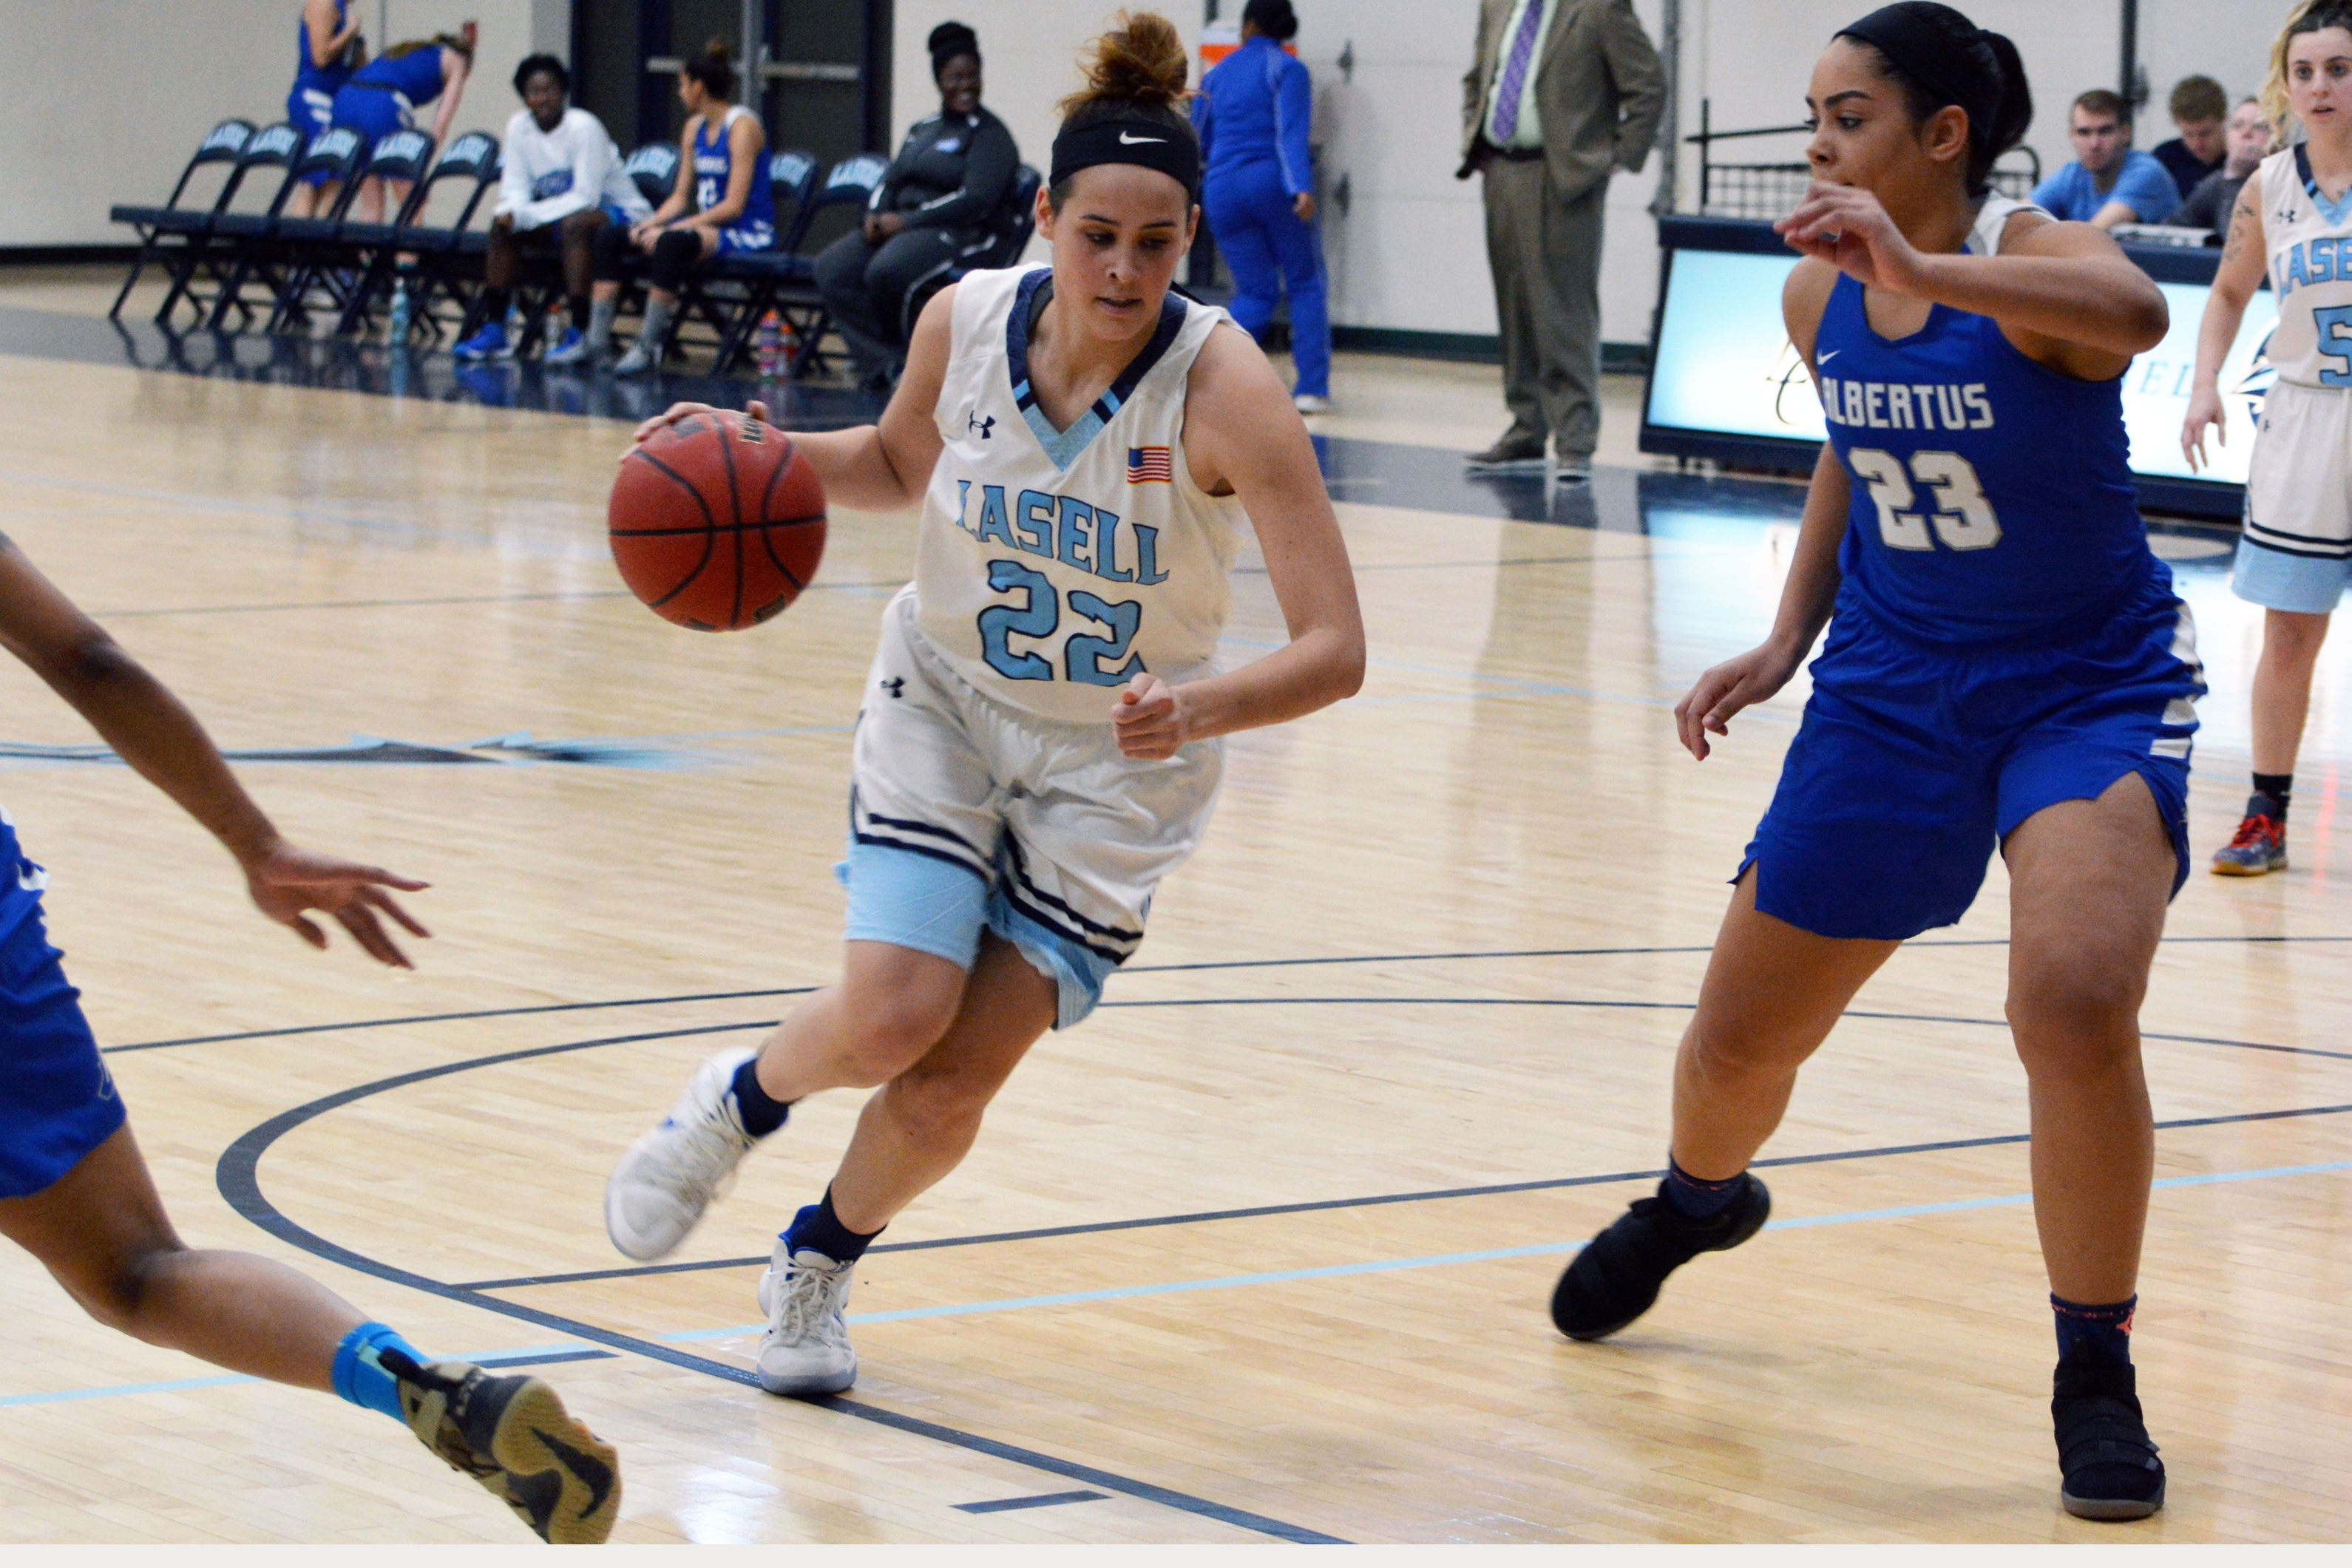 Lasell Women's Basketball falls to Albertus Magnus